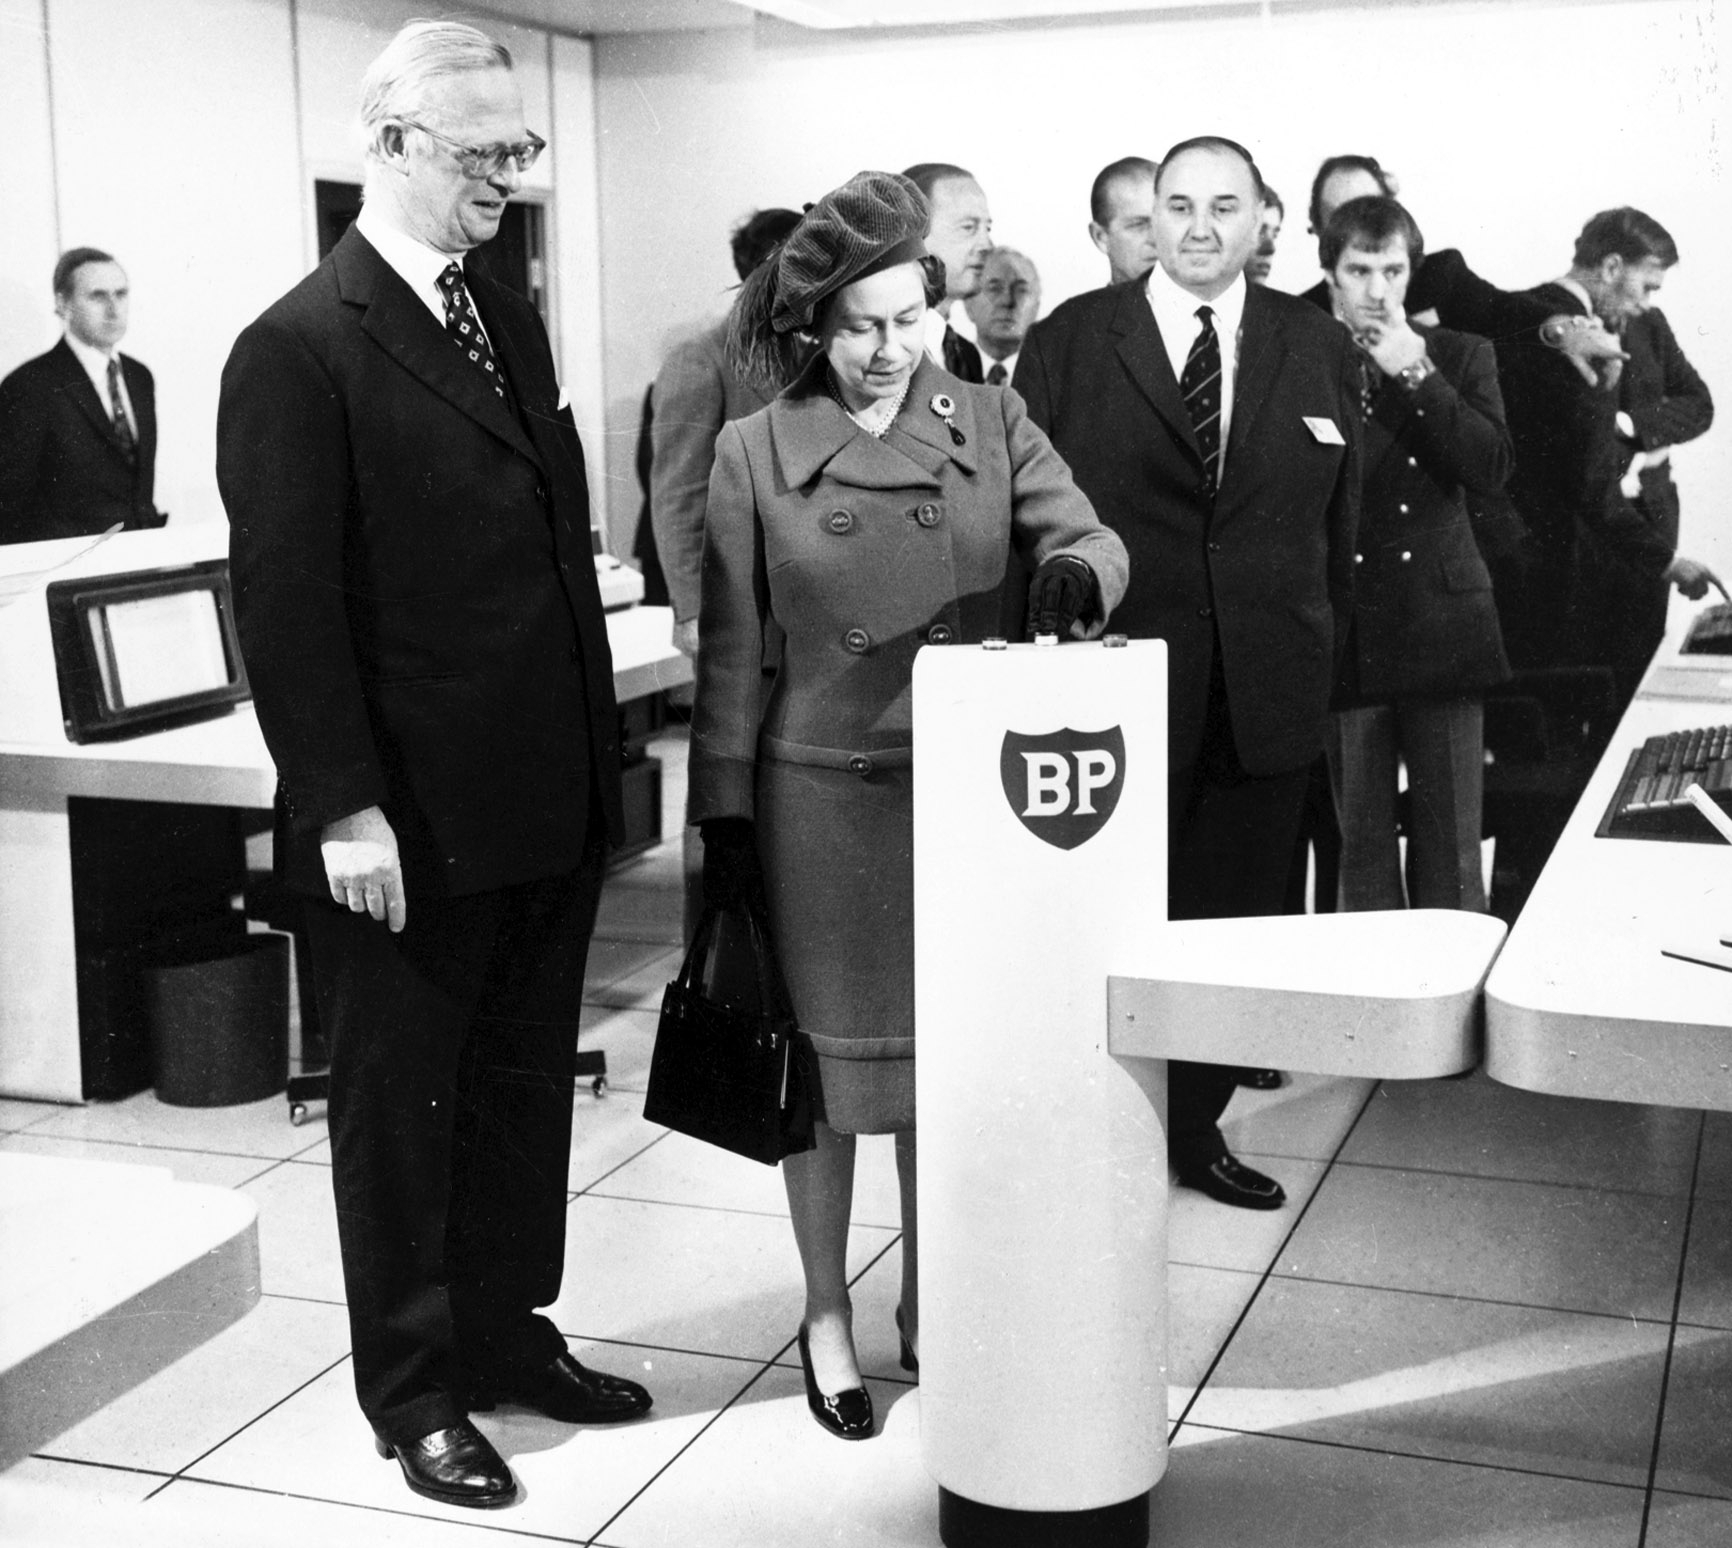 """The Queen at the """"switch-on""""  ceremony where she officially starts the oil flowing from the Forties Field at the BP complex in Dyce. Picture copyright Aberdeen Journals Ltd. 3rd November 1975"""